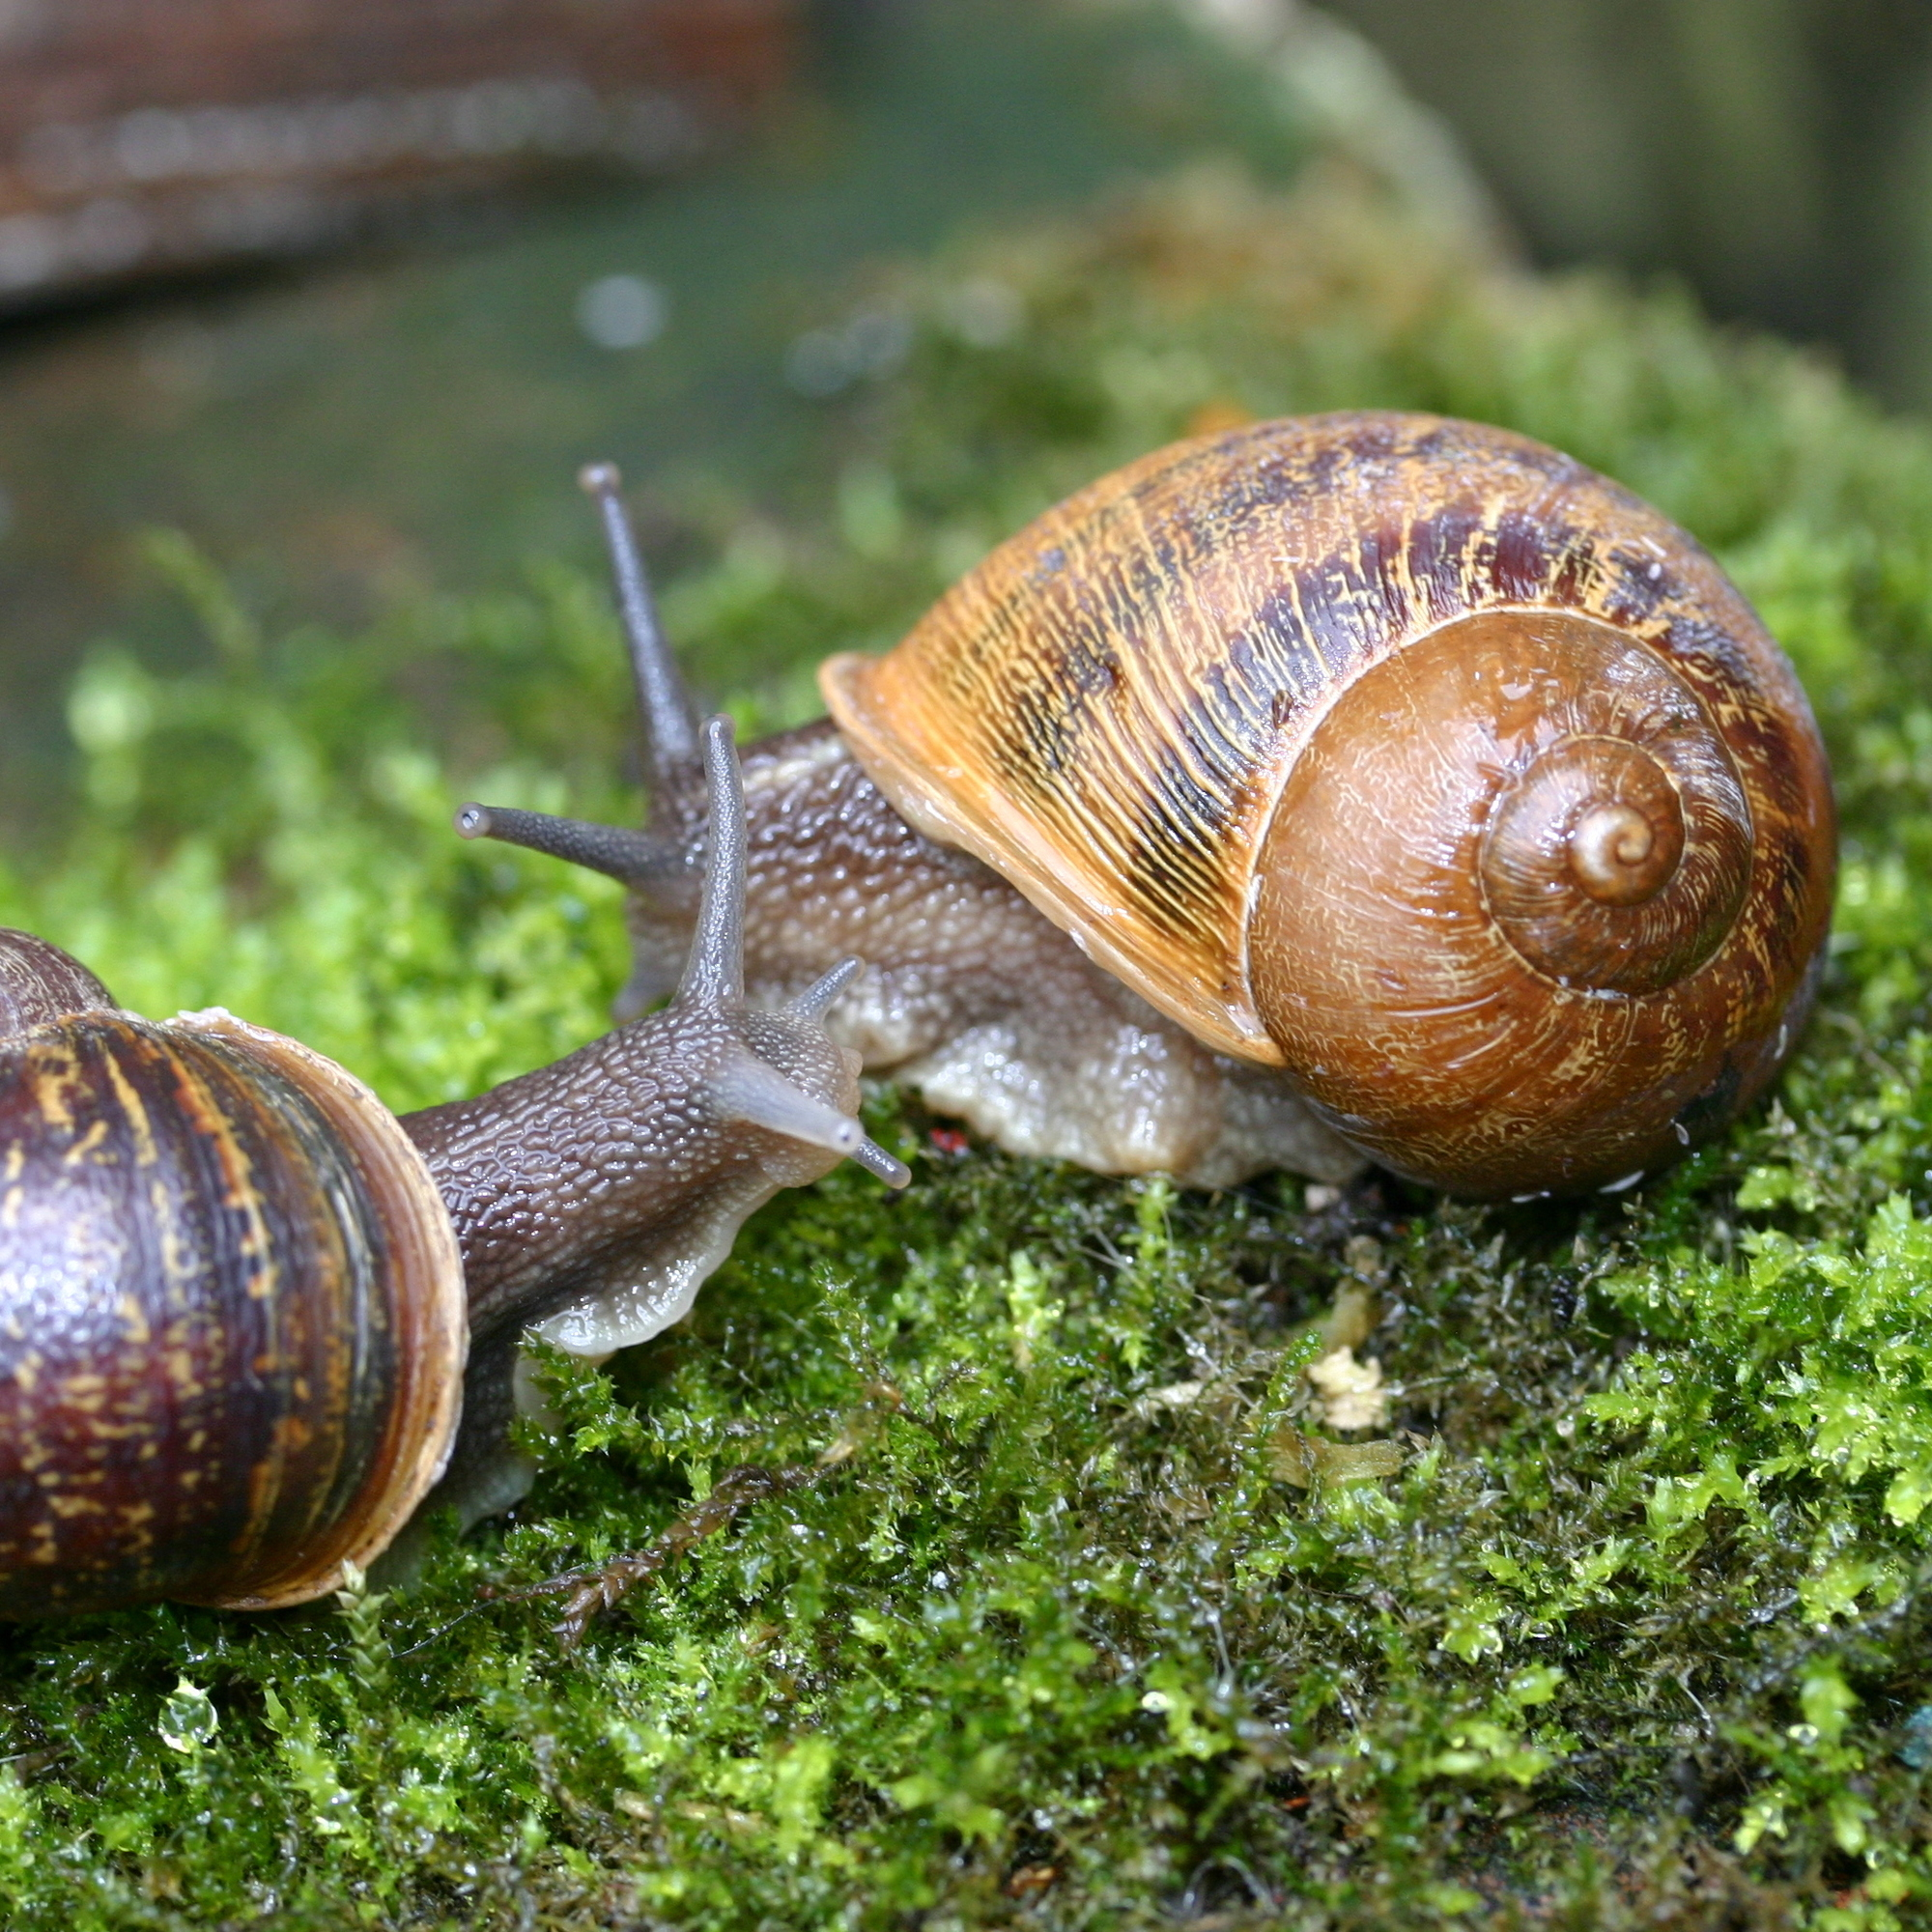 Animal Insemination Porn can't hurry love: rare snail finds romance after global